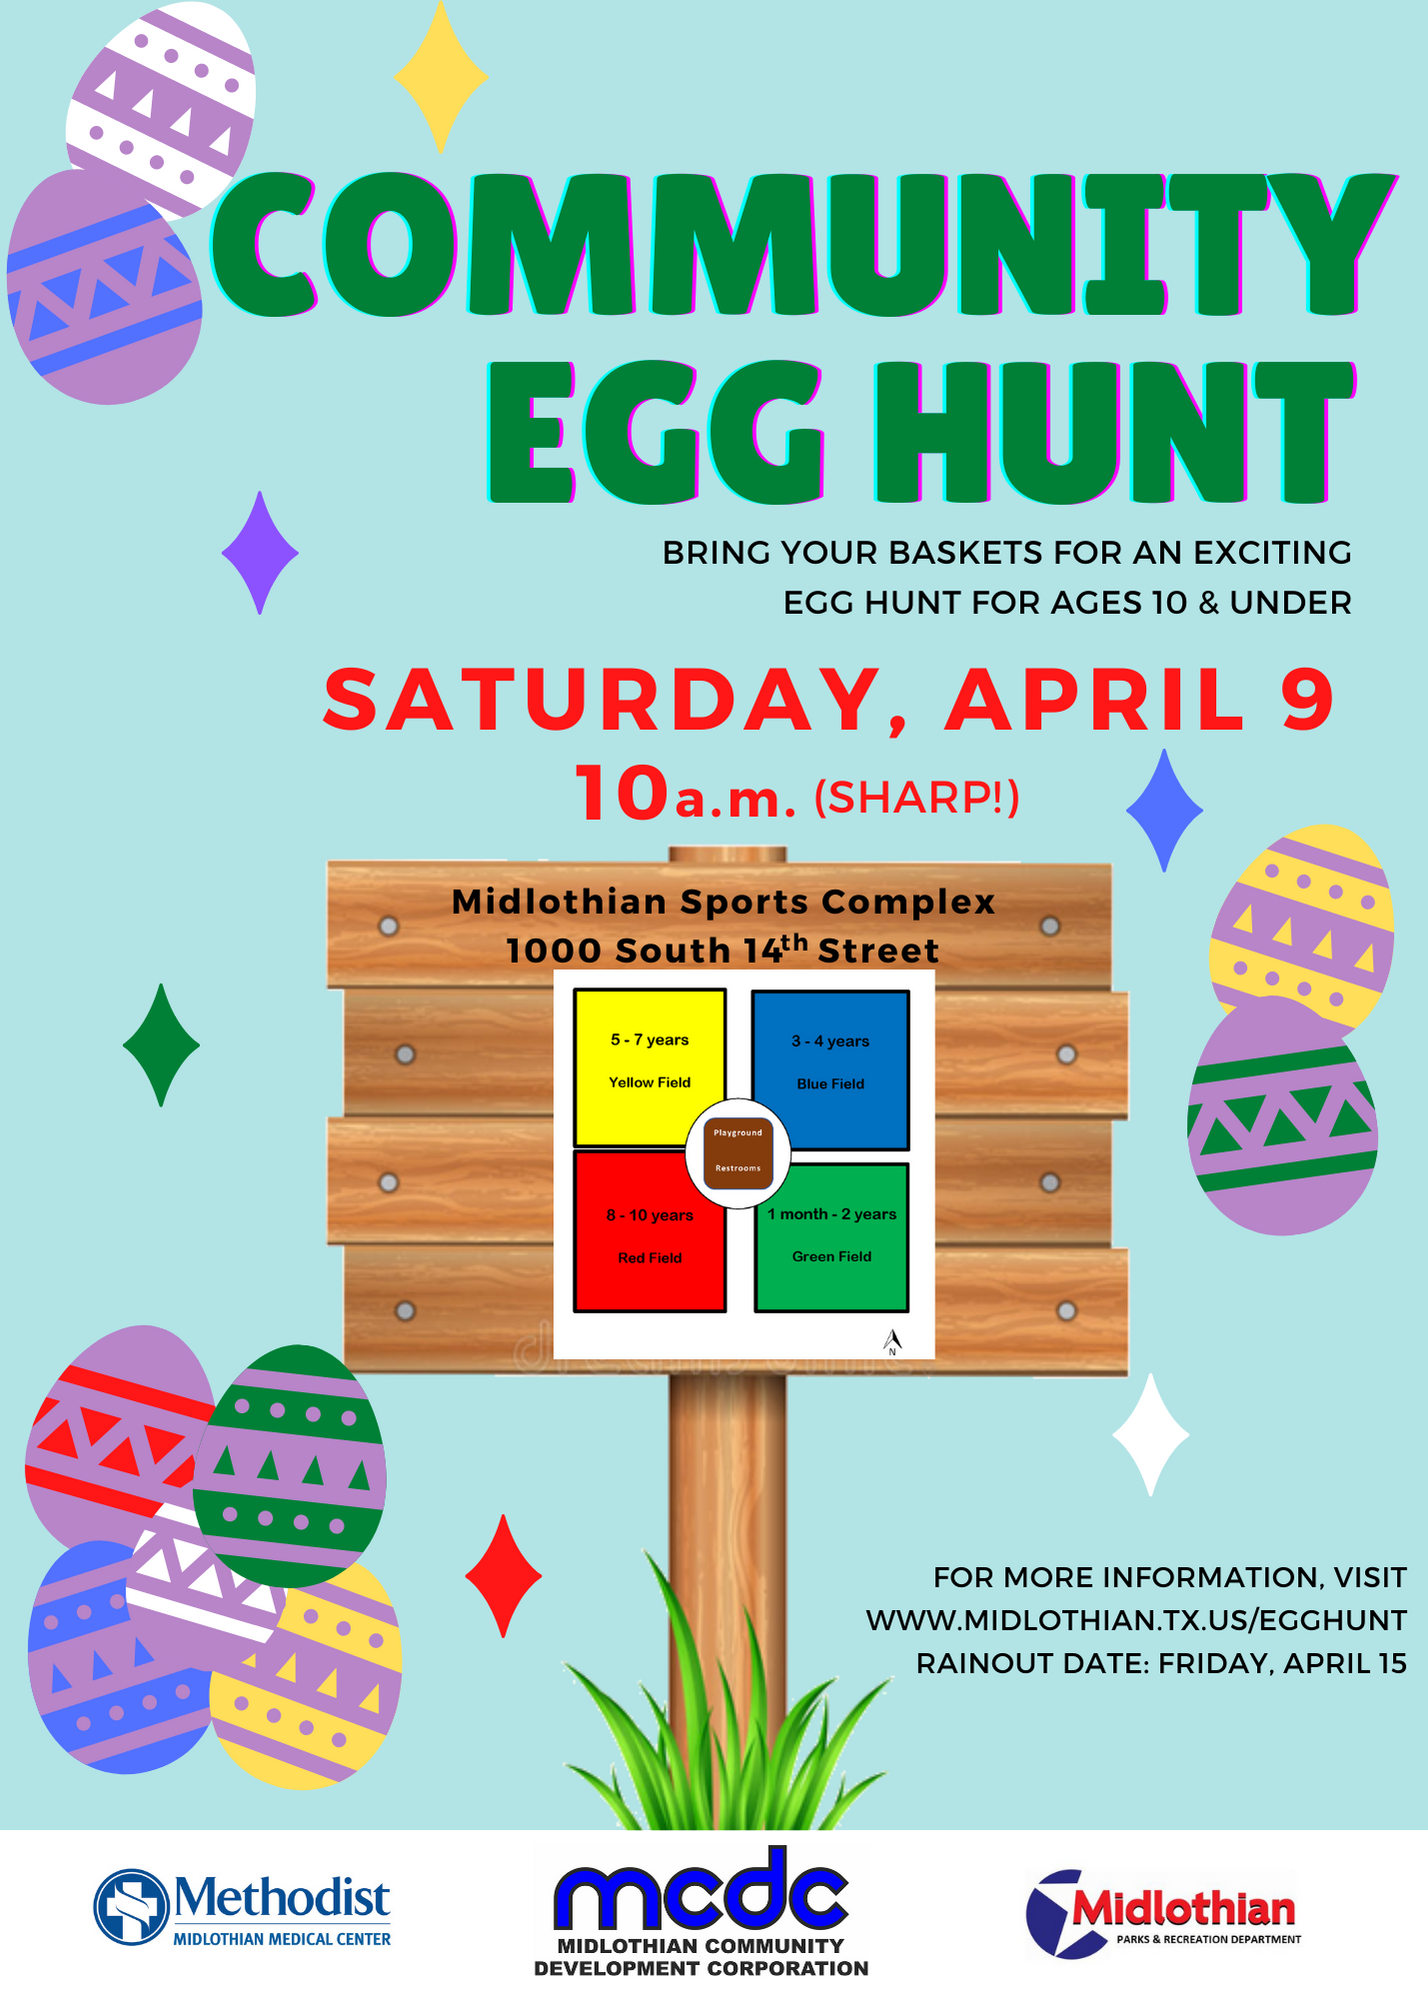 2021 Egg Hunt Flier Image